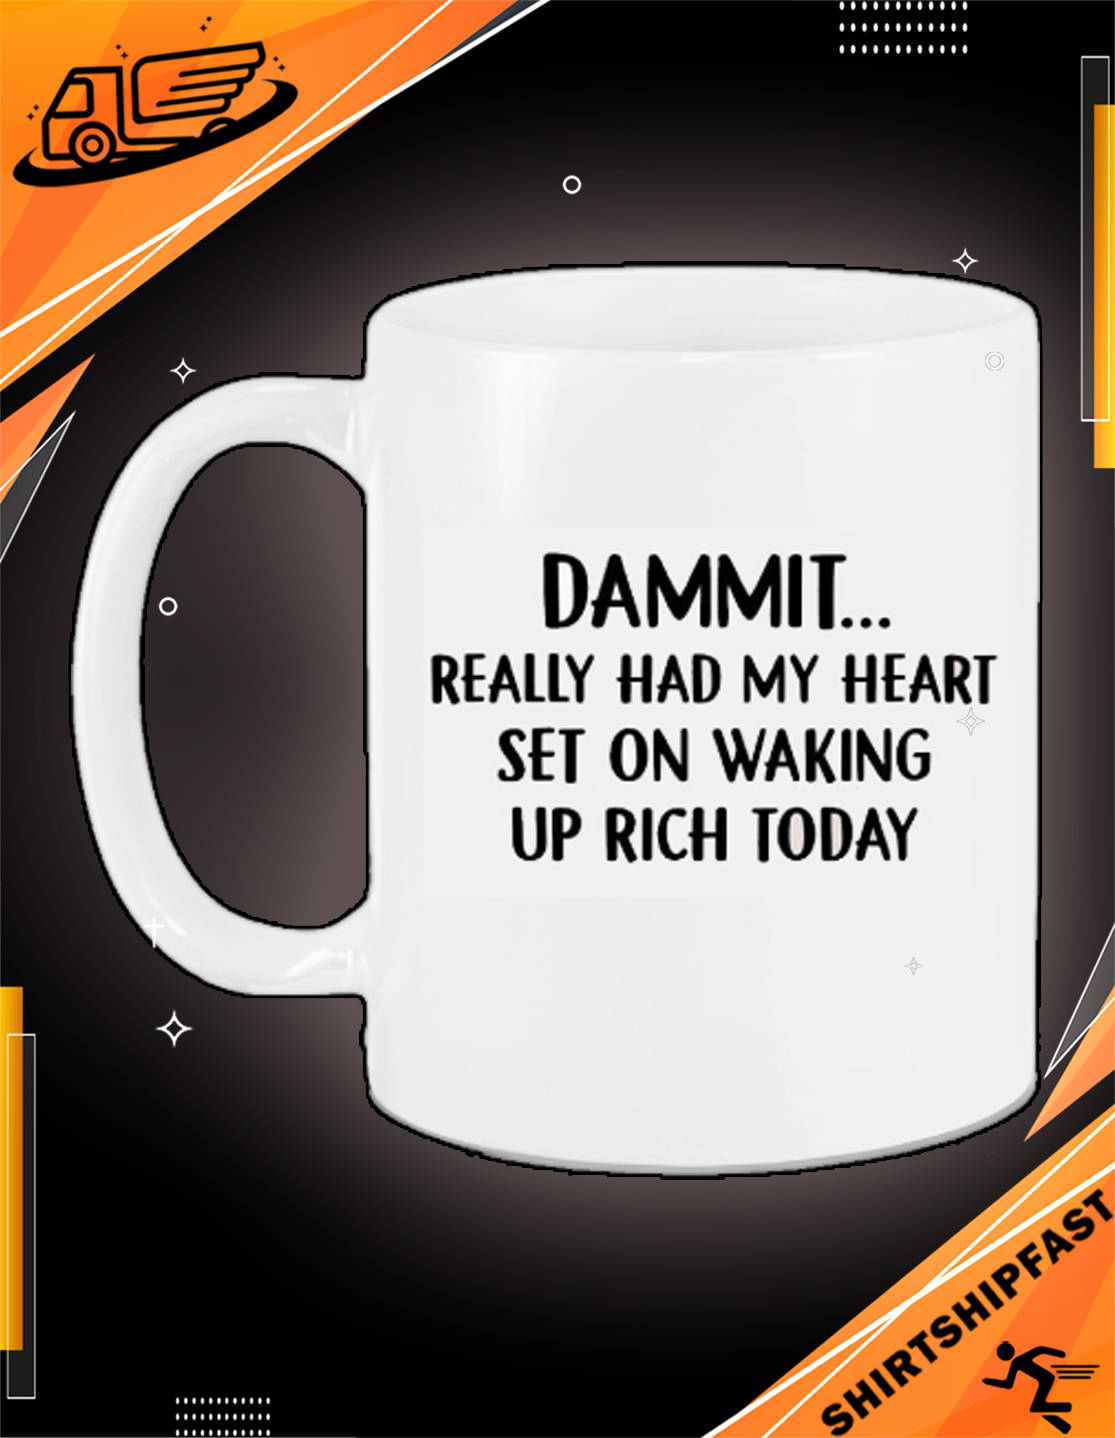 Dammit really had my heart set on waking up rich today mug - Picture 2